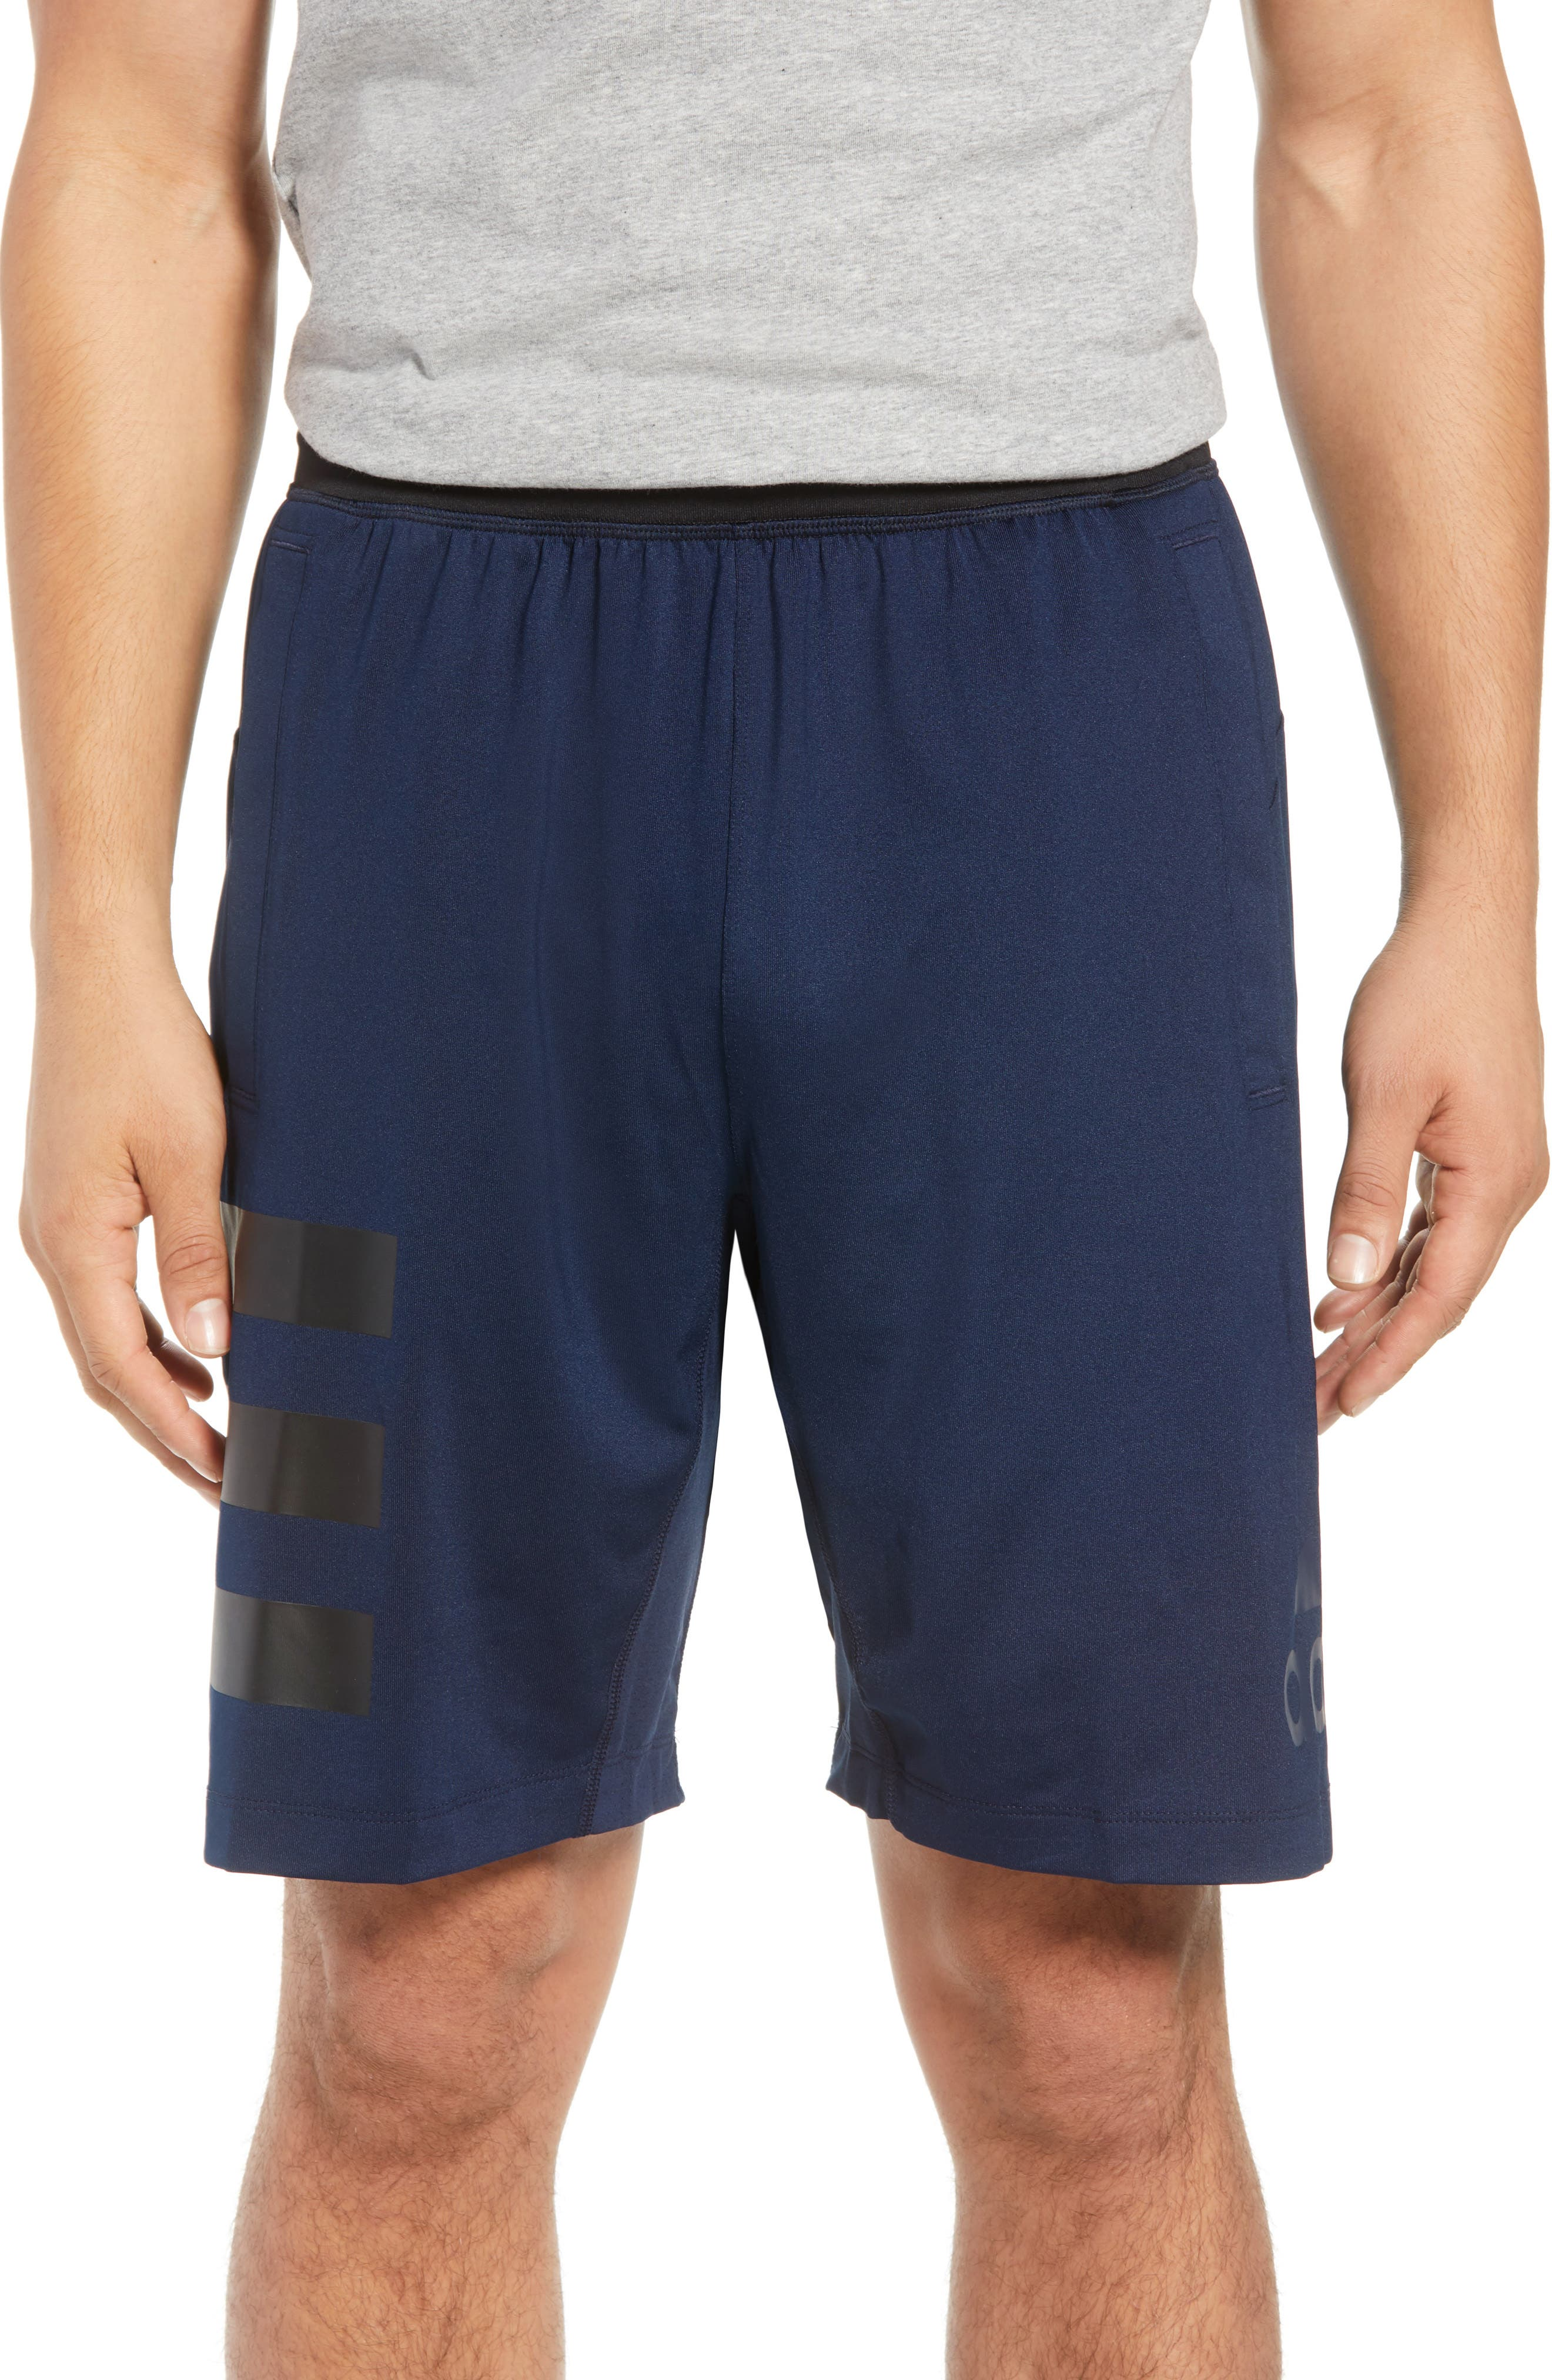 SB Hype Icon Shorts,                             Main thumbnail 1, color,                             COLLEGIATE NAVY/ BLACK